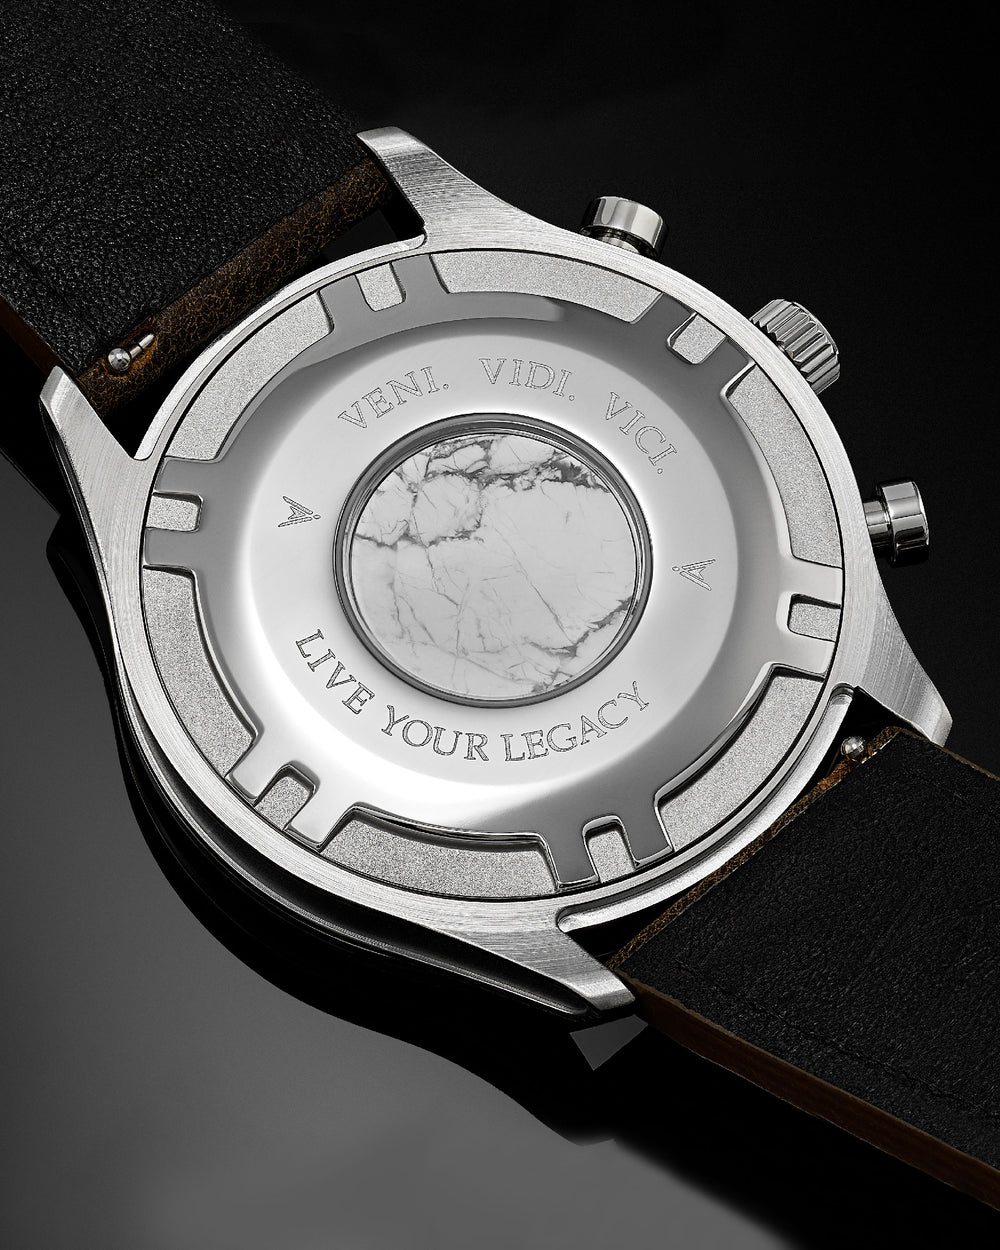 Vincero Altitude Luxury Watch 316L Stainless Steel Caseback with Veni Vidi Vici Live Your Legacy Engraving